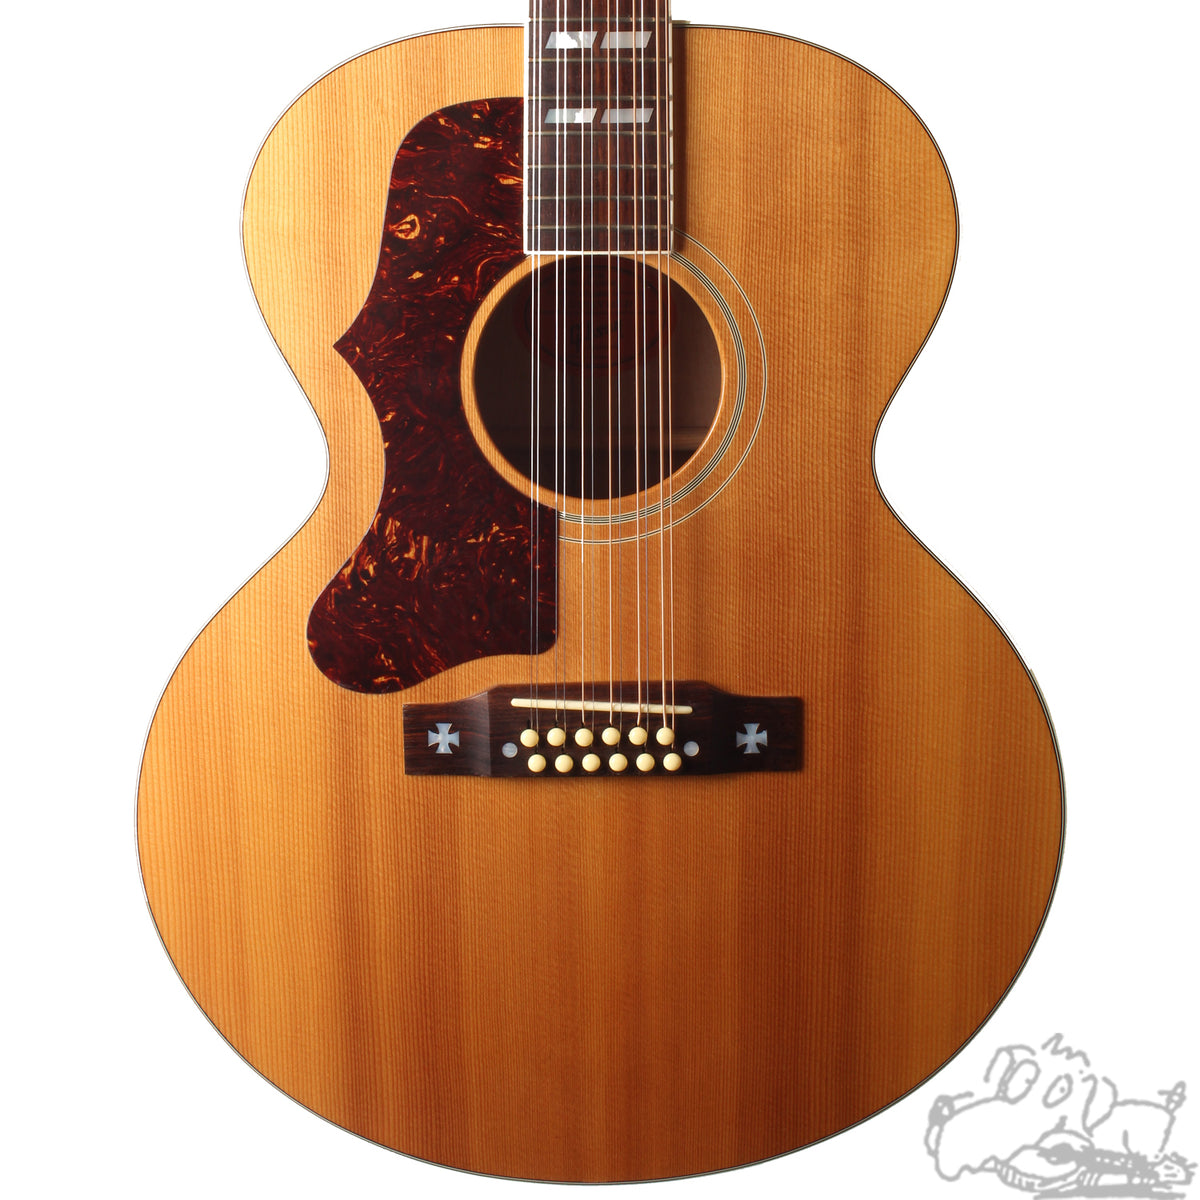 2005 Gibson J-185 12 Lefthanded